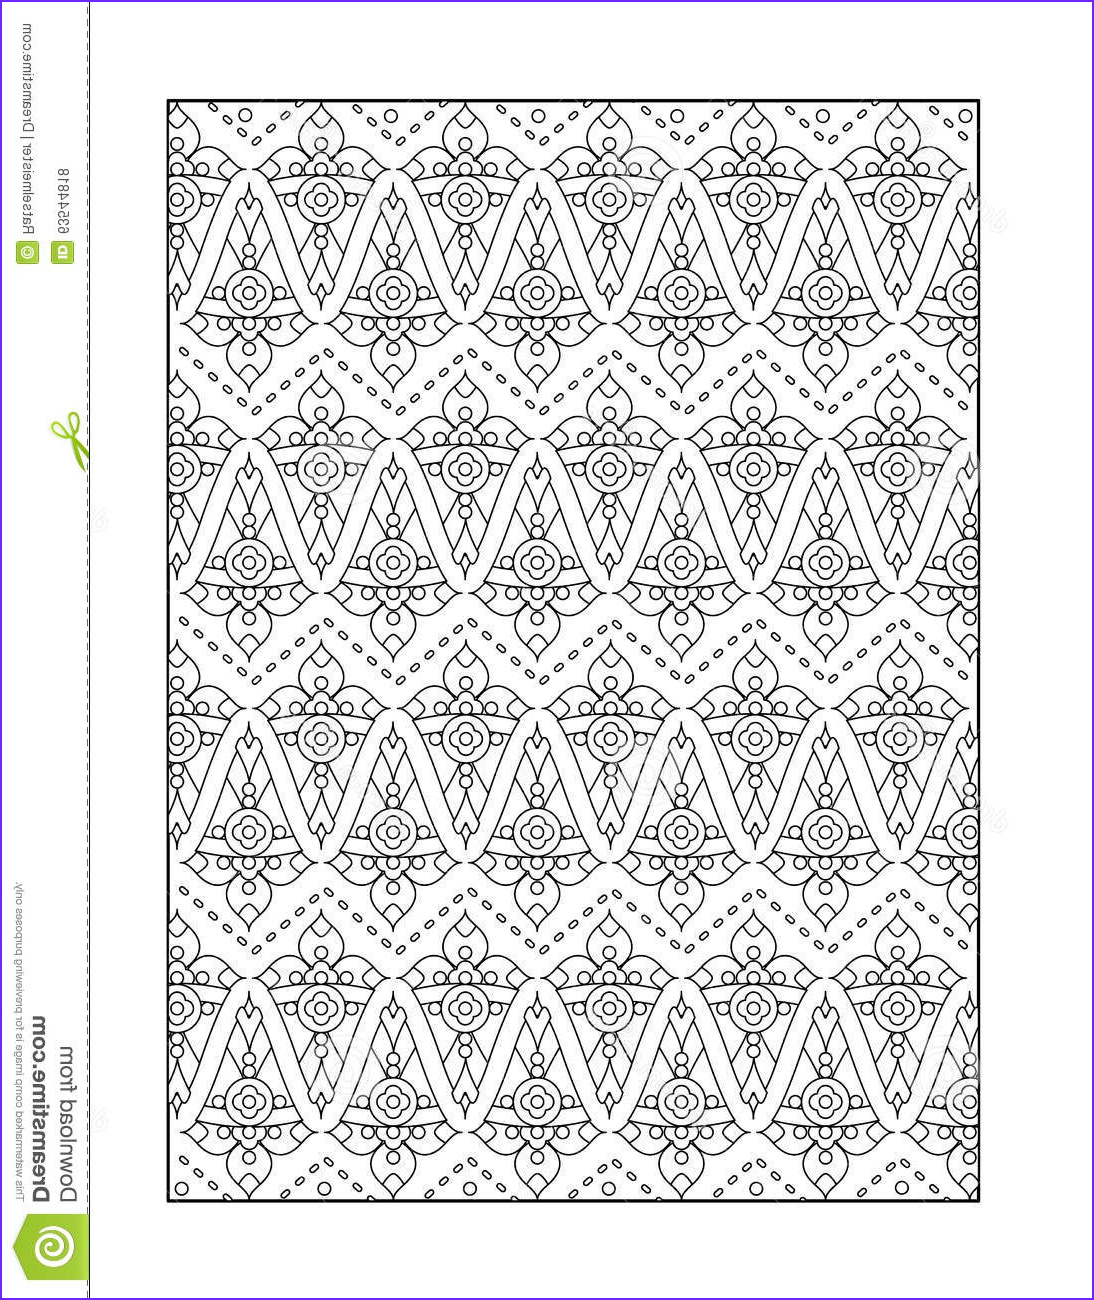 stock illustration coloring page adults black white ornamental background pattern children ok too monochrome decorative image